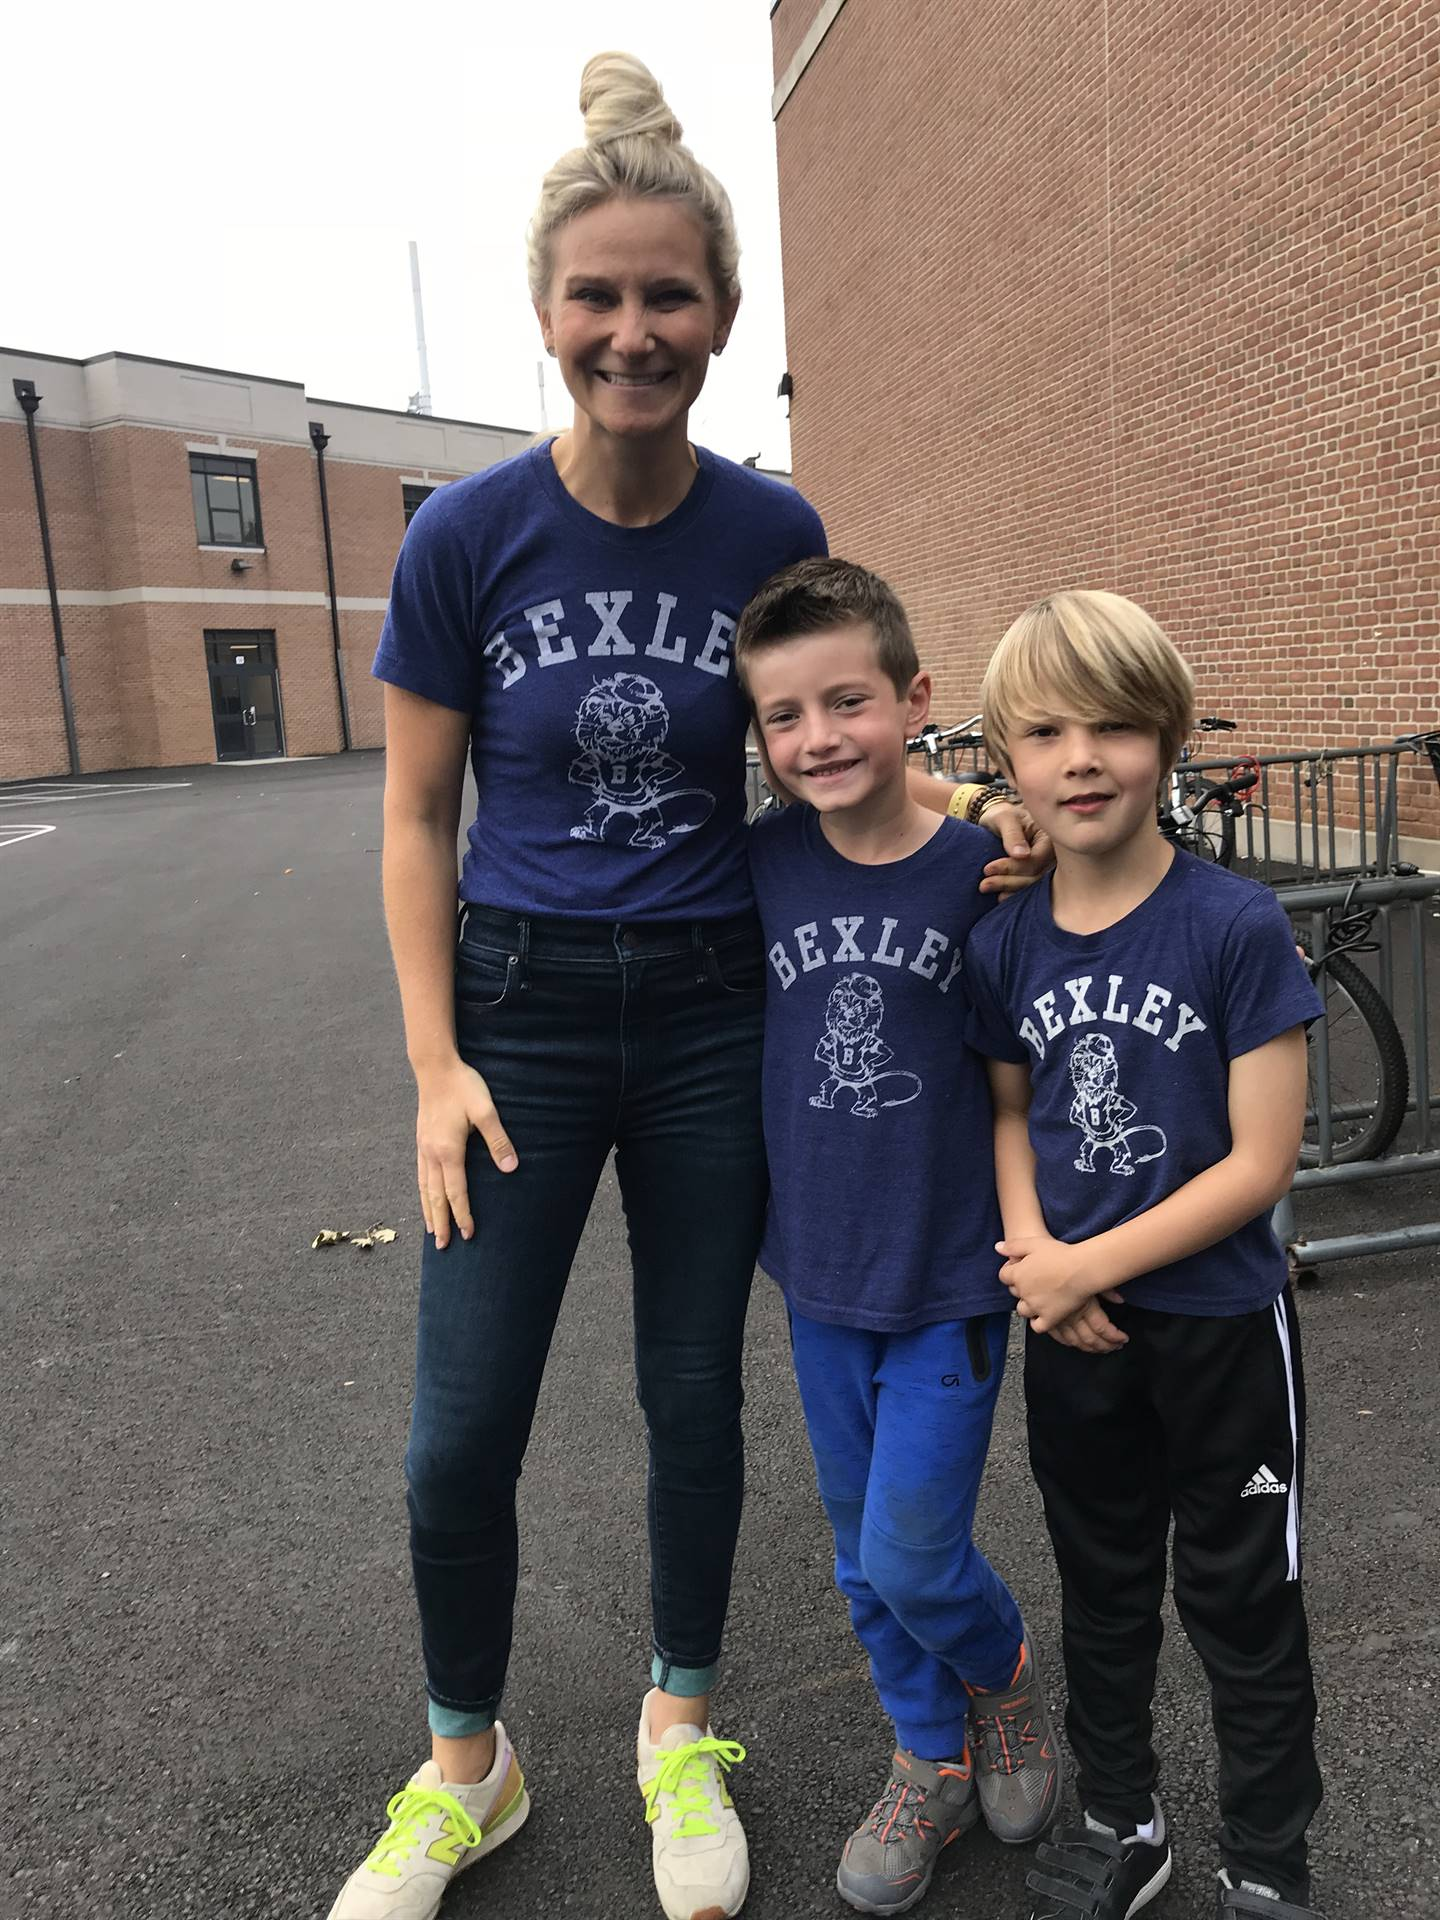 Showing our Bexley pride!